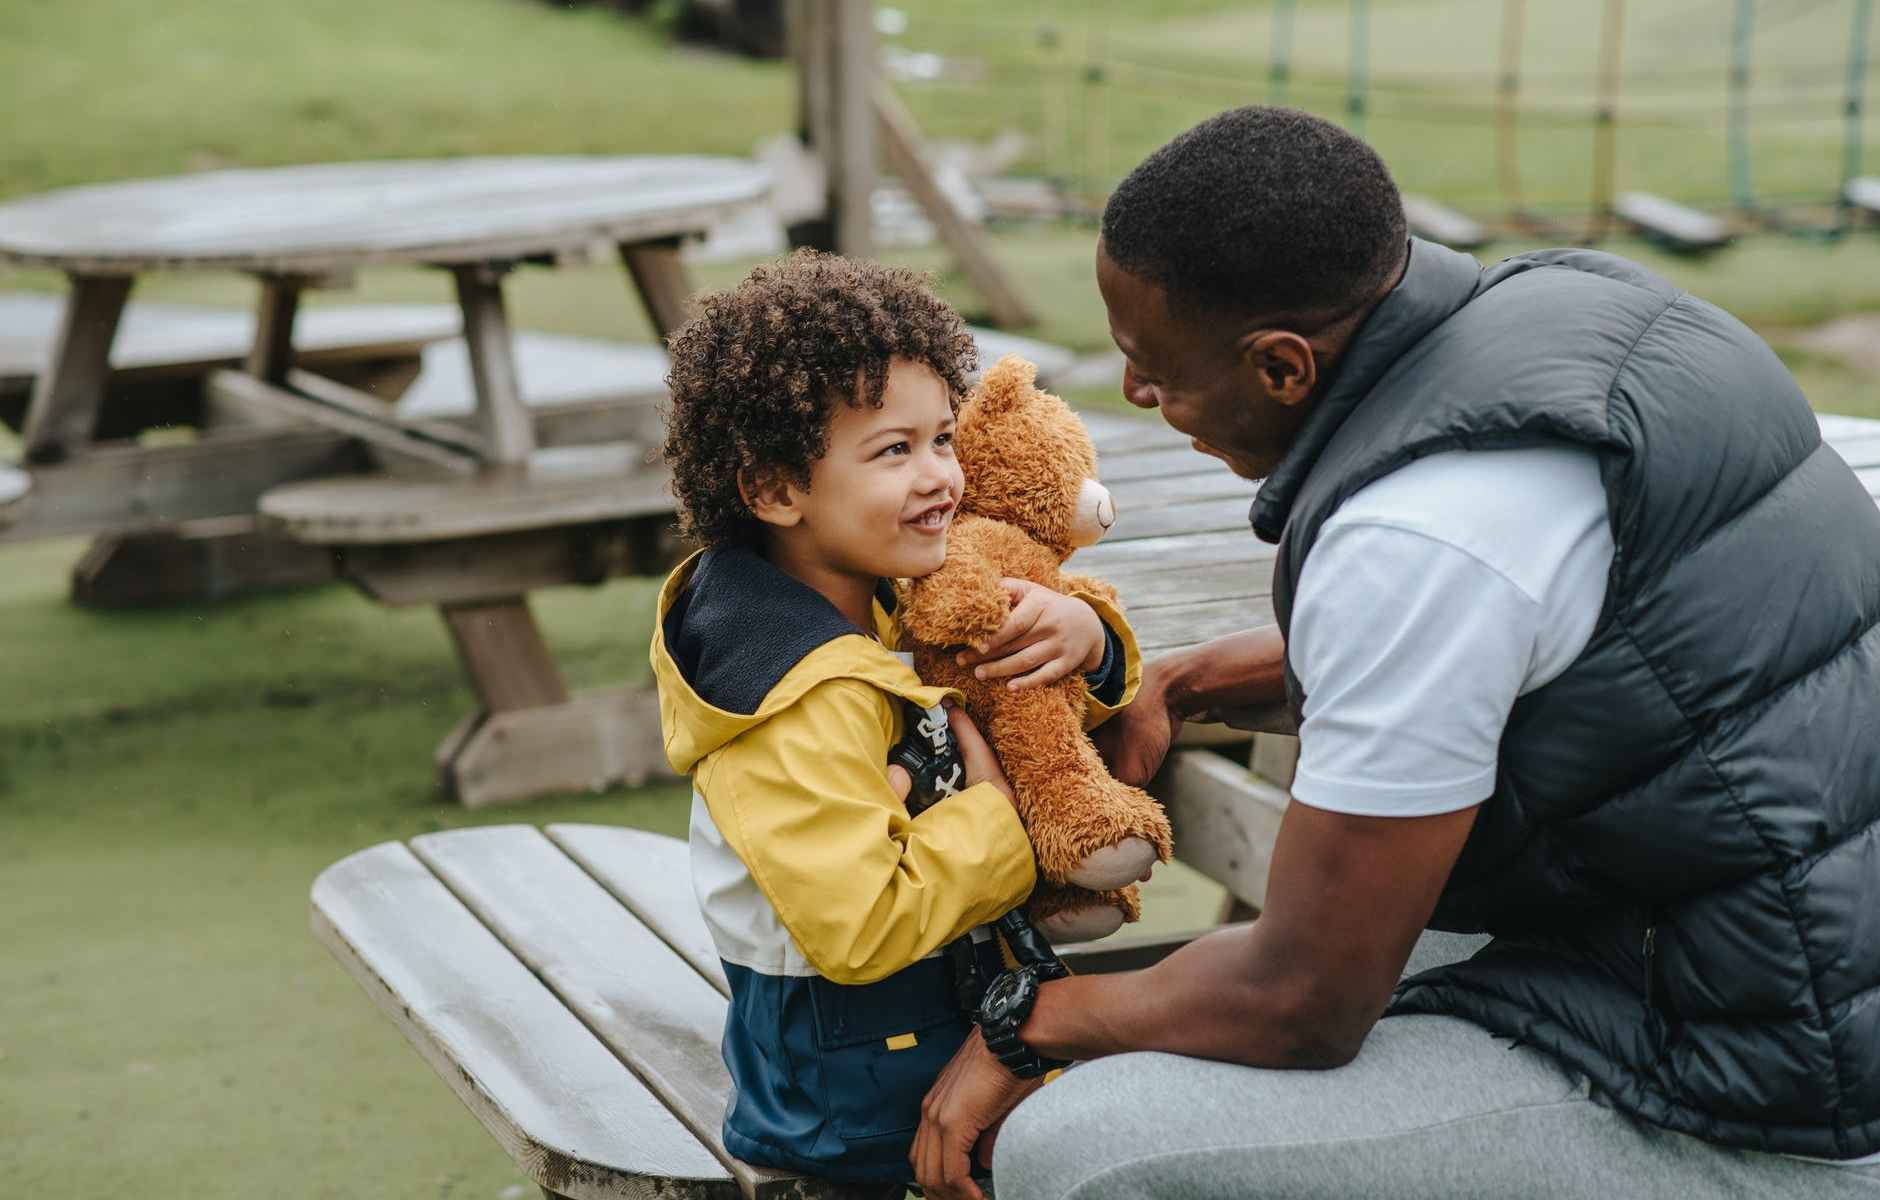 happy black father and son on playground